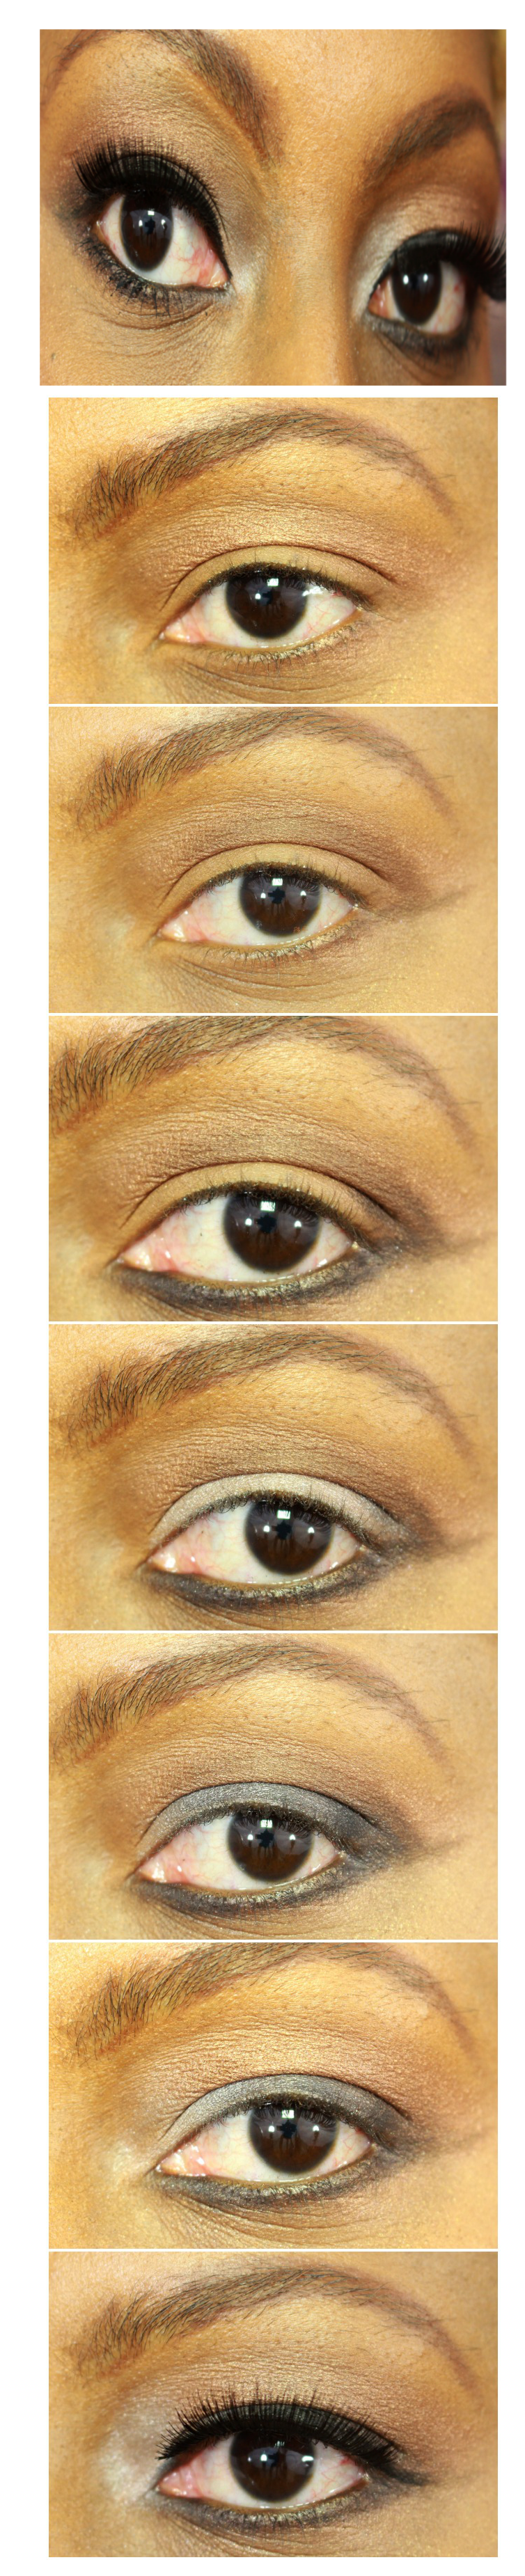 Too Faced Cat Eyes Pictorial